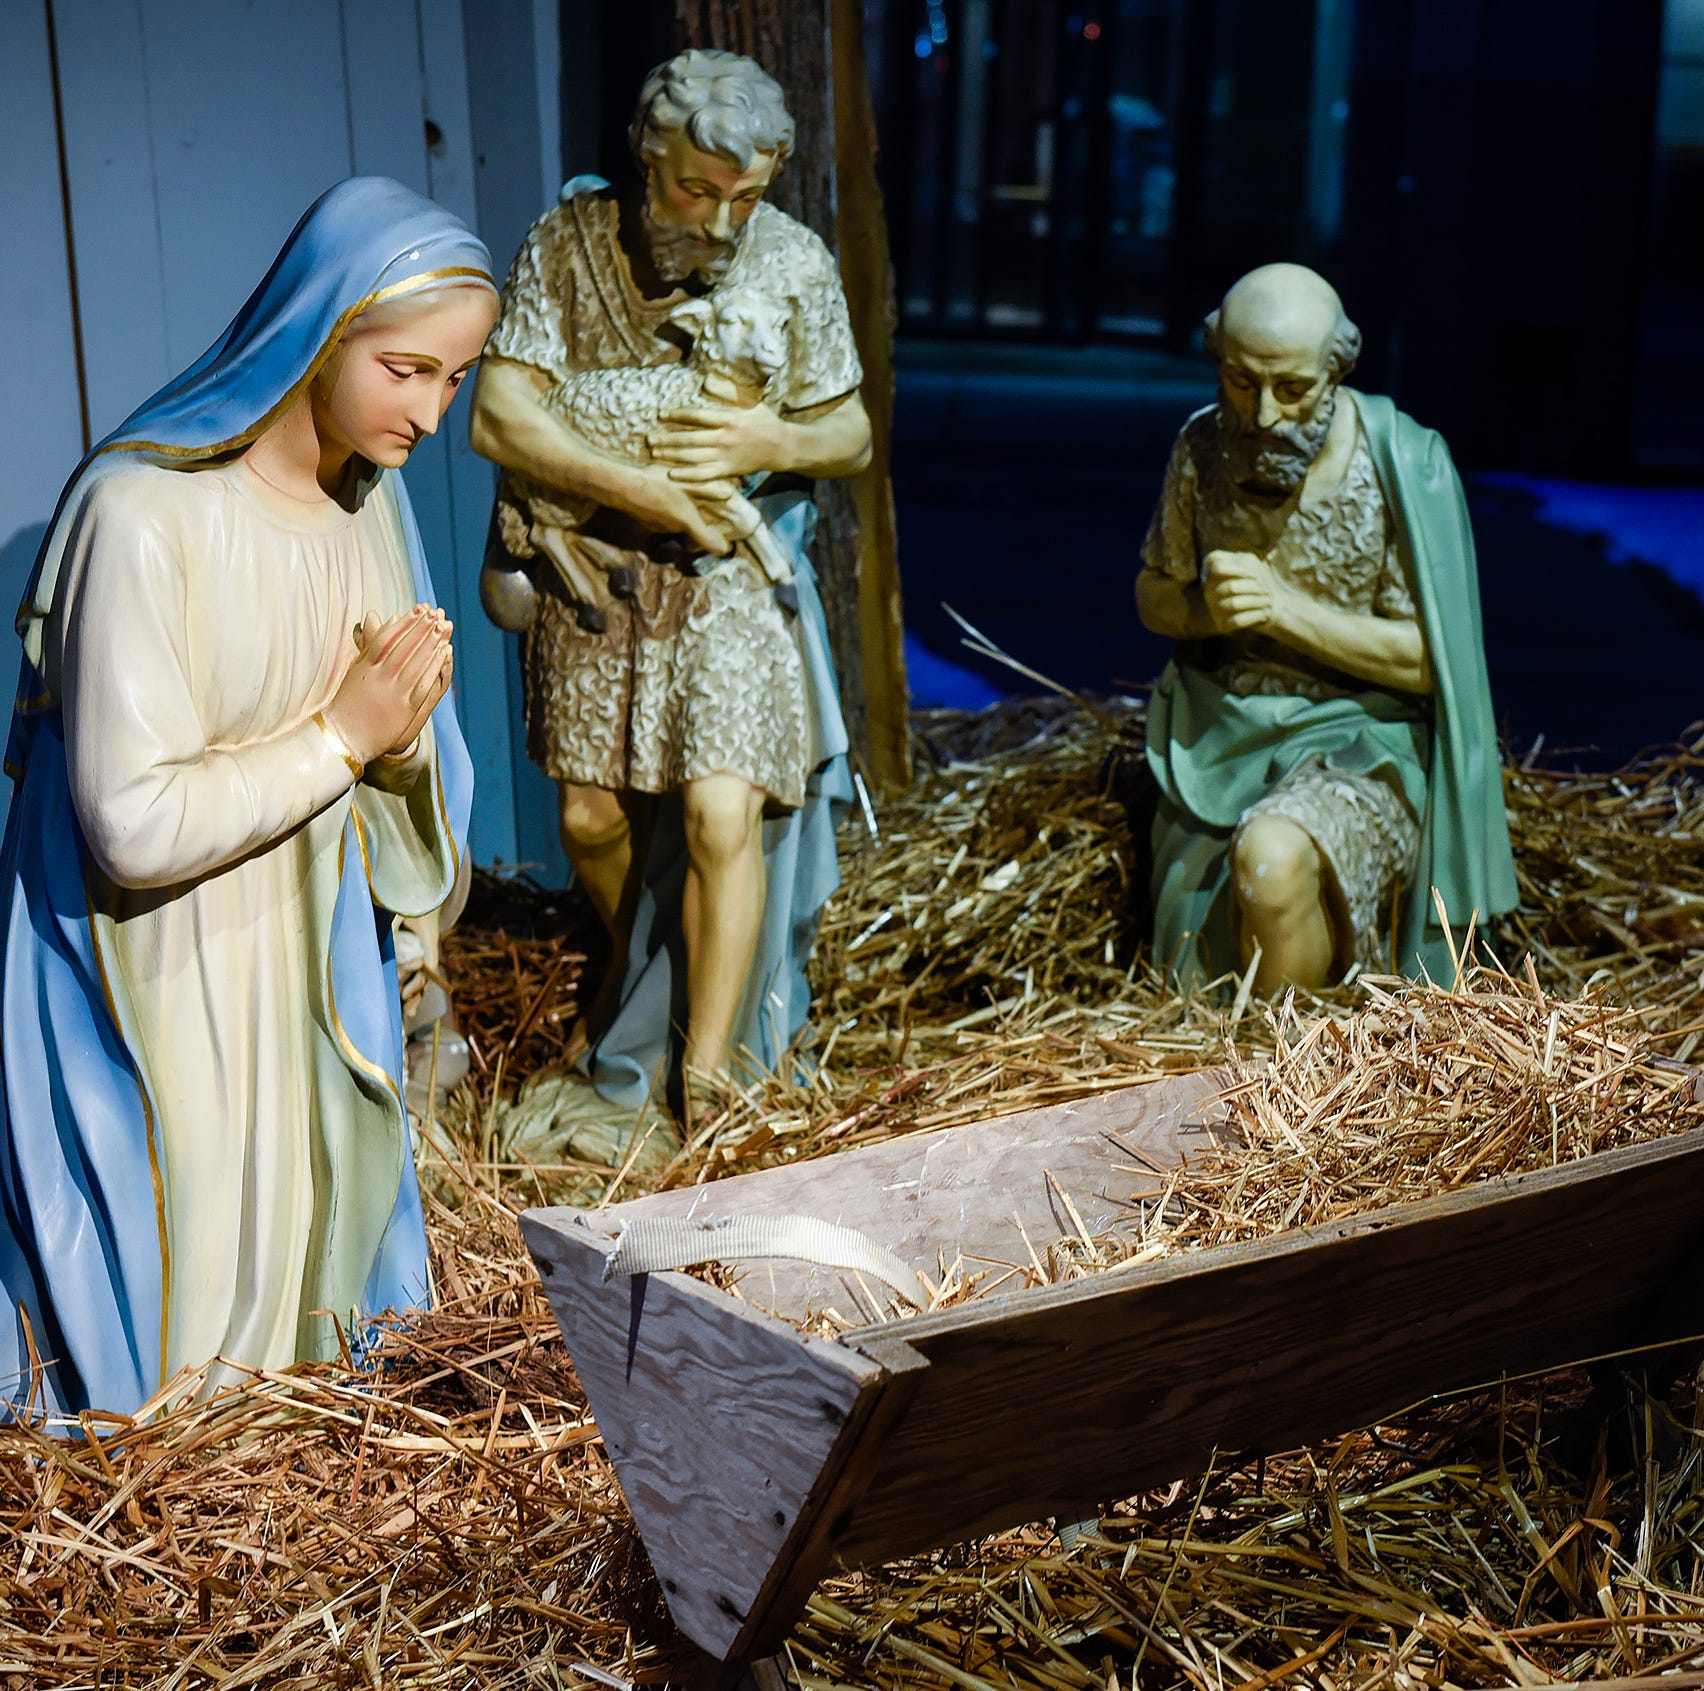 Away from his manger: Antique baby Jesus stolen from downtown nativity scene